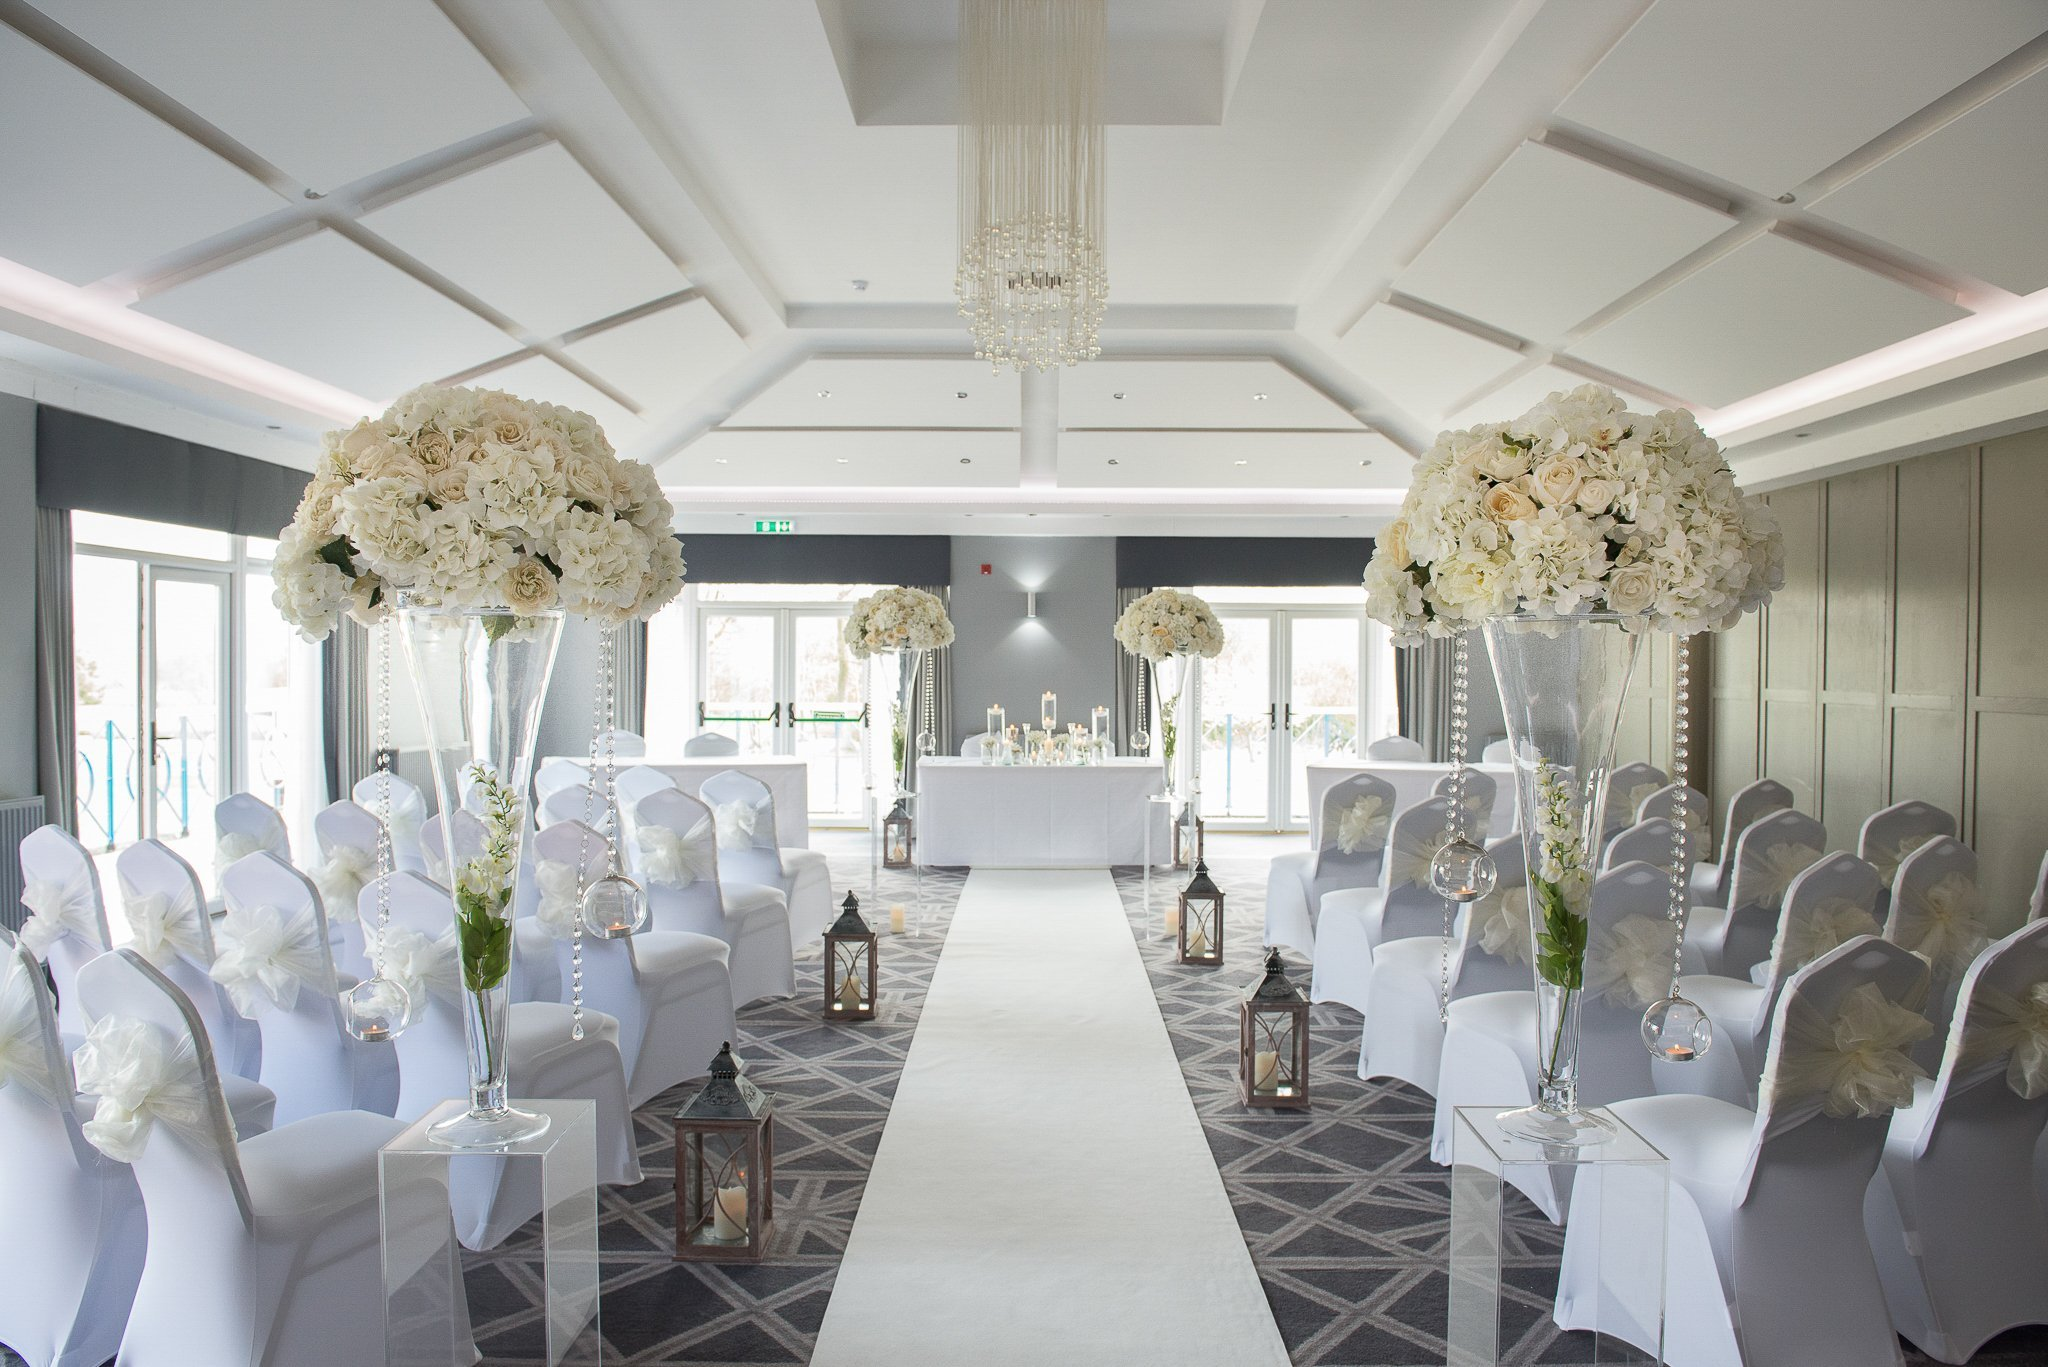 ceremony room venue dressing large flower arrangements with chair covers